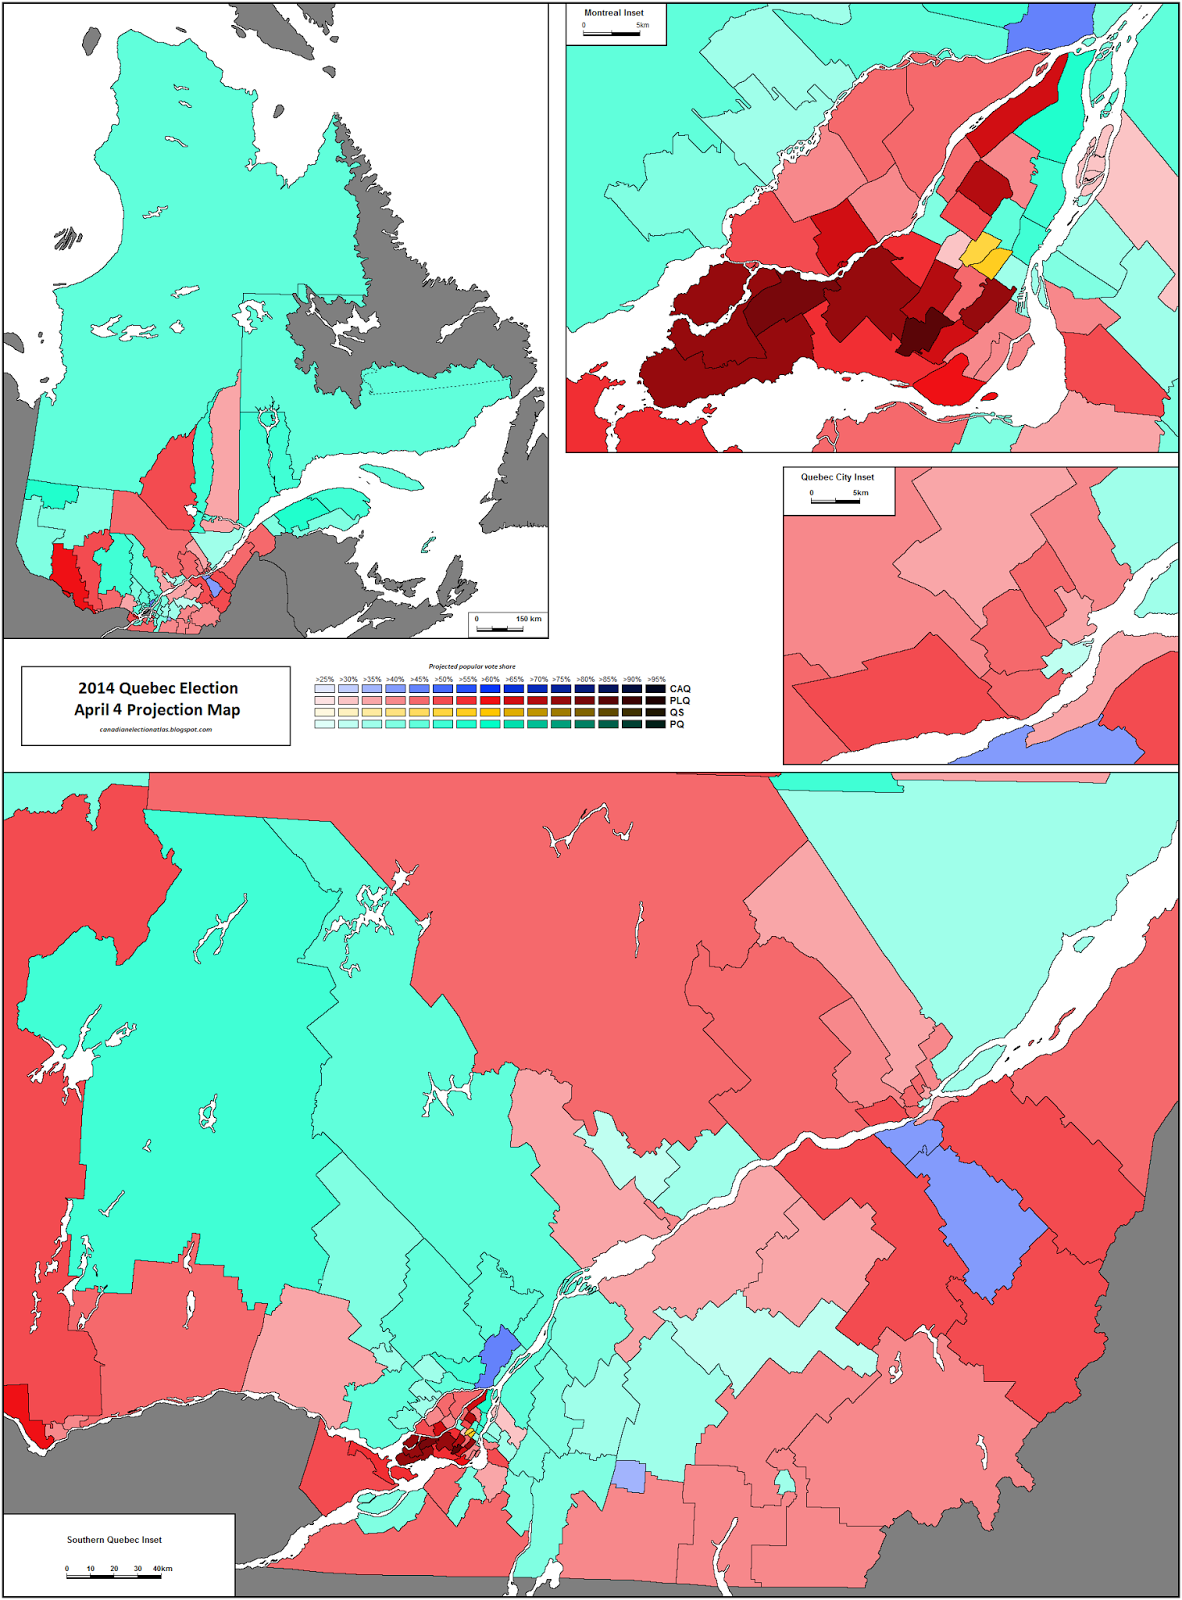 2014 Quebec Provincial Election Week 5 Projection